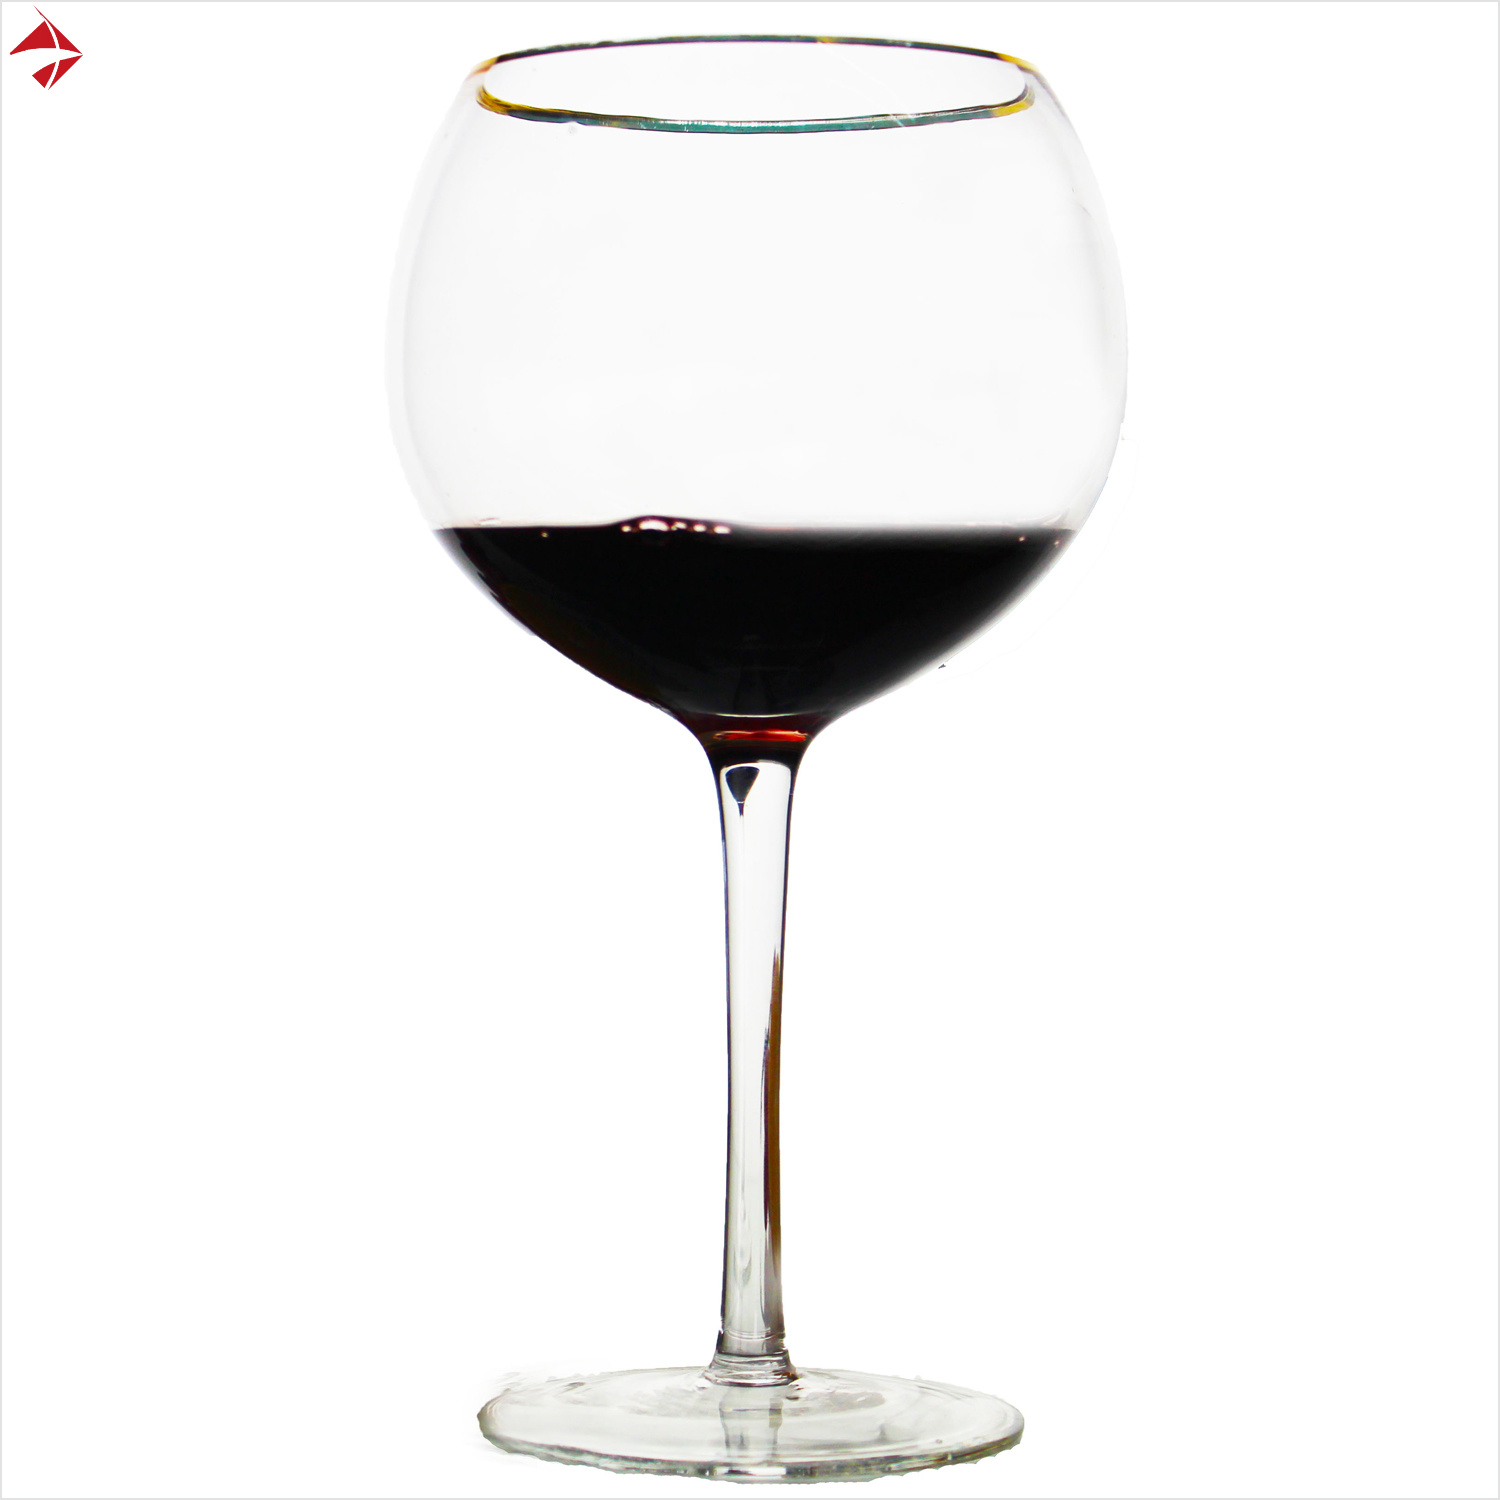 China Premium Luxe 2 Piece Large Wide Red Wine Glass Set With Gold Rim 670ml China Glass Drinkware And Beer Glasses Price